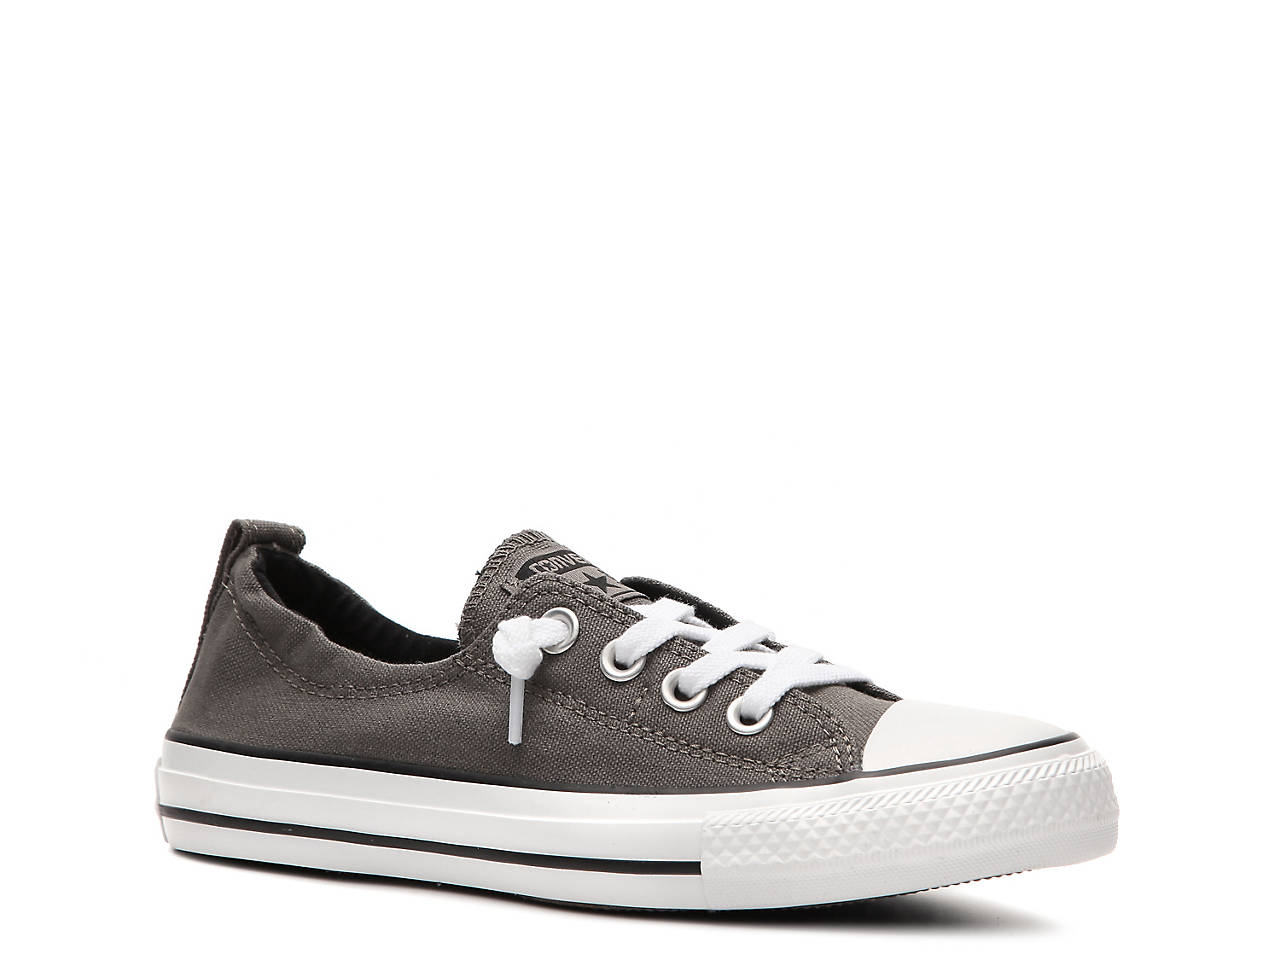 Women's Shoreline Sneakers xKjnzPGt